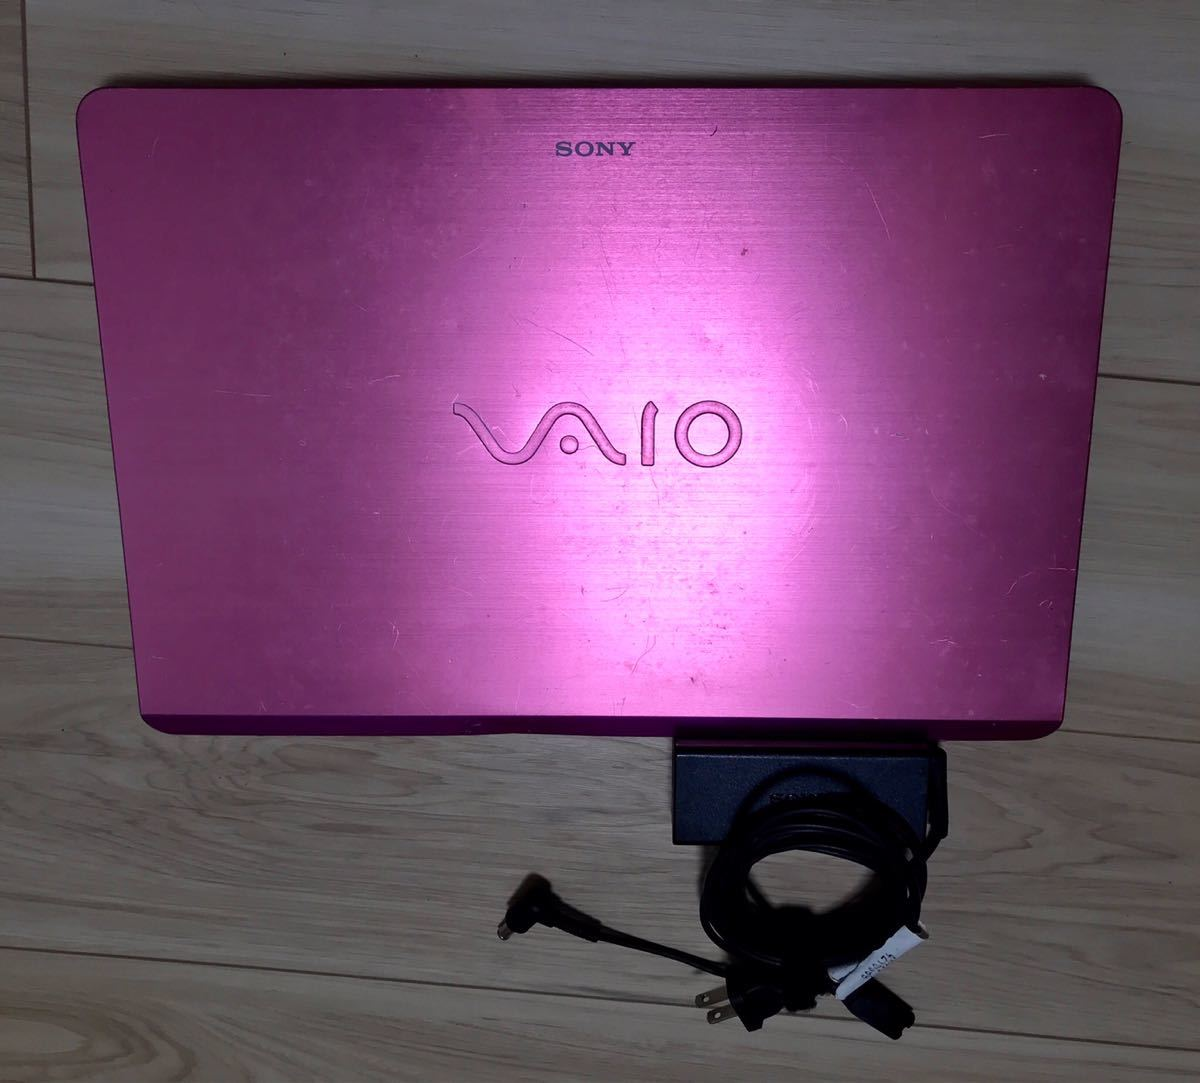 SONY VAIO FIT15 SVF15A18CJP ソニー ノートパソコン PC ジャンクピンク SSD タッチパネル_画像9